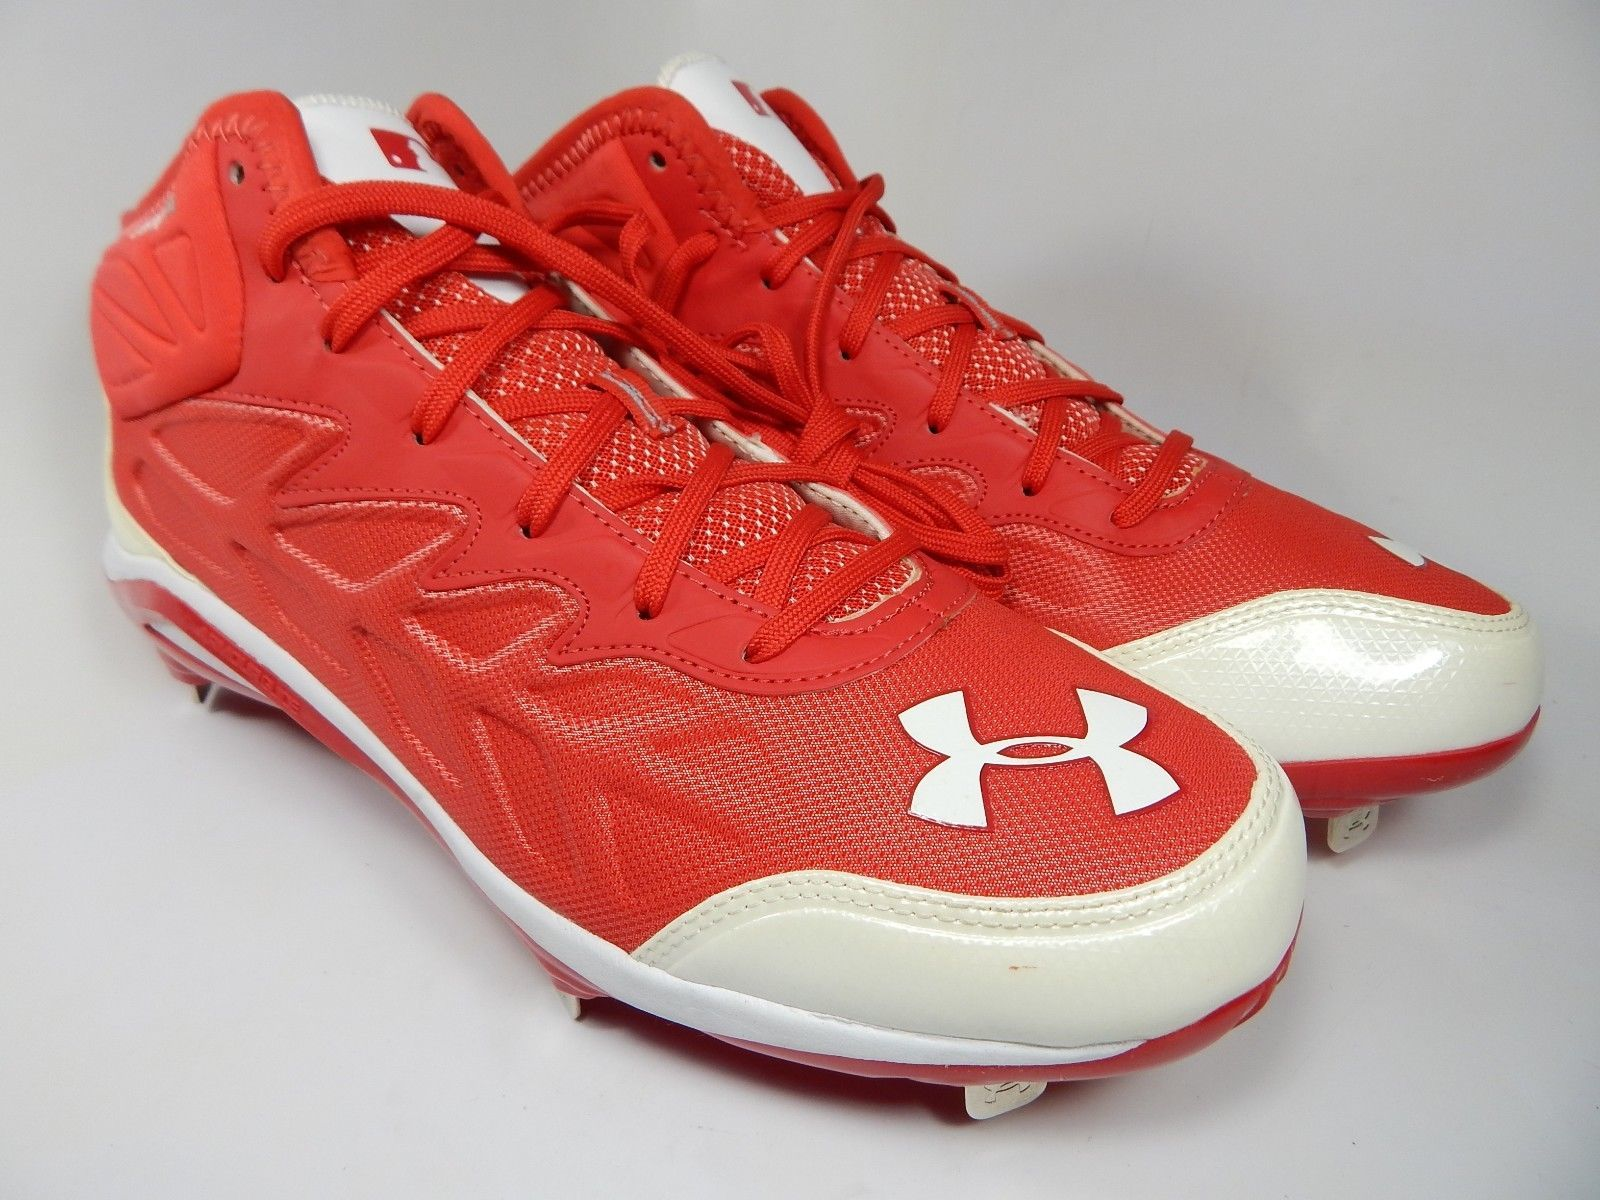 Under Armour Heater ST Mid Top Sz 12 M EU 46 Metal Baseball Cleats 1248197-611